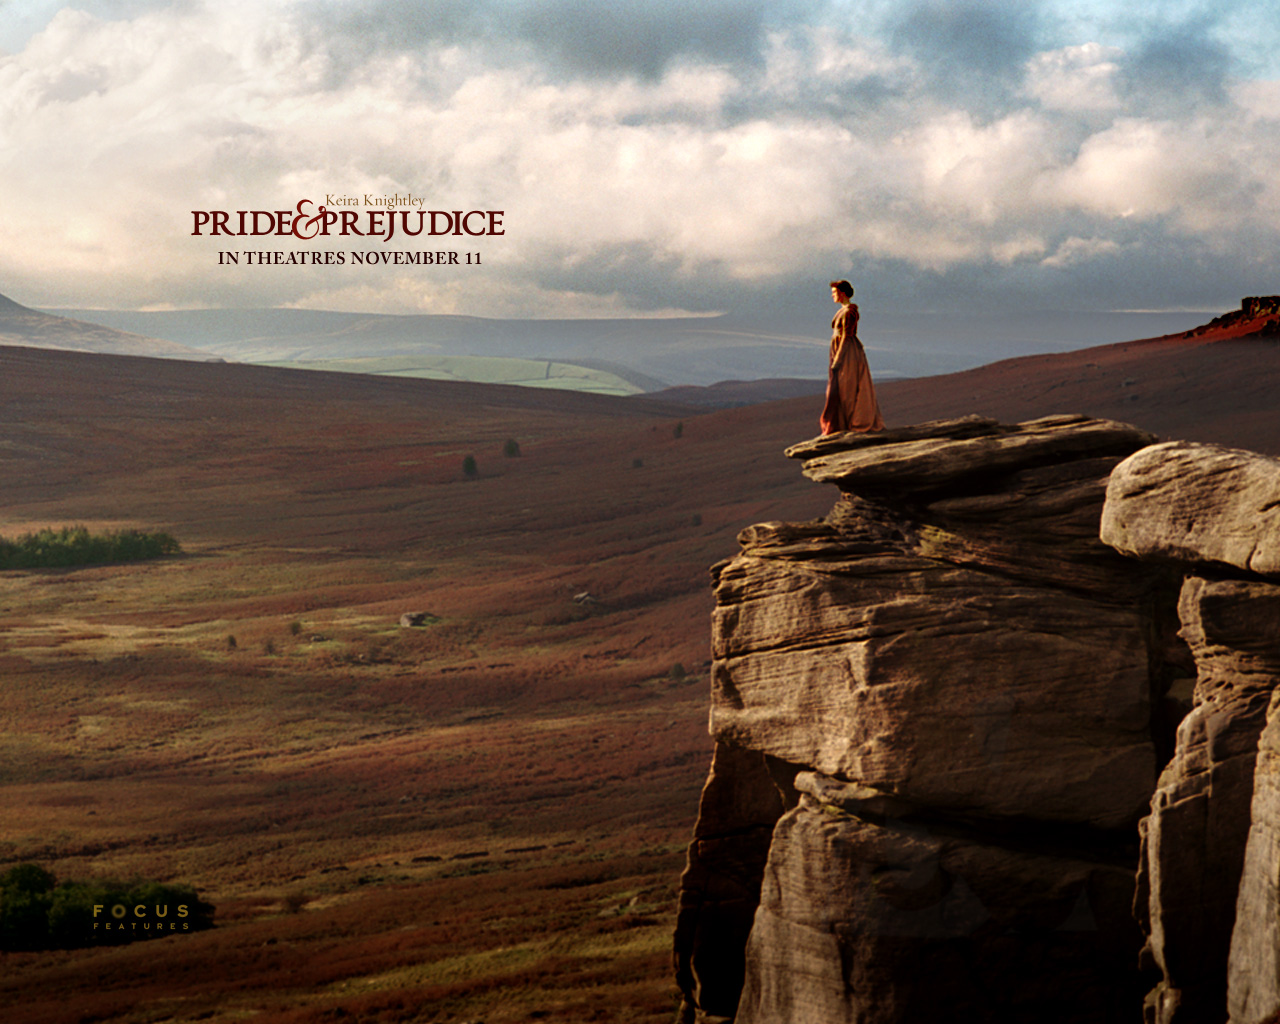 Lisy on top of the world pride and prejudice wallpaper 416175 fanpop - On top of the world wallpaper ...